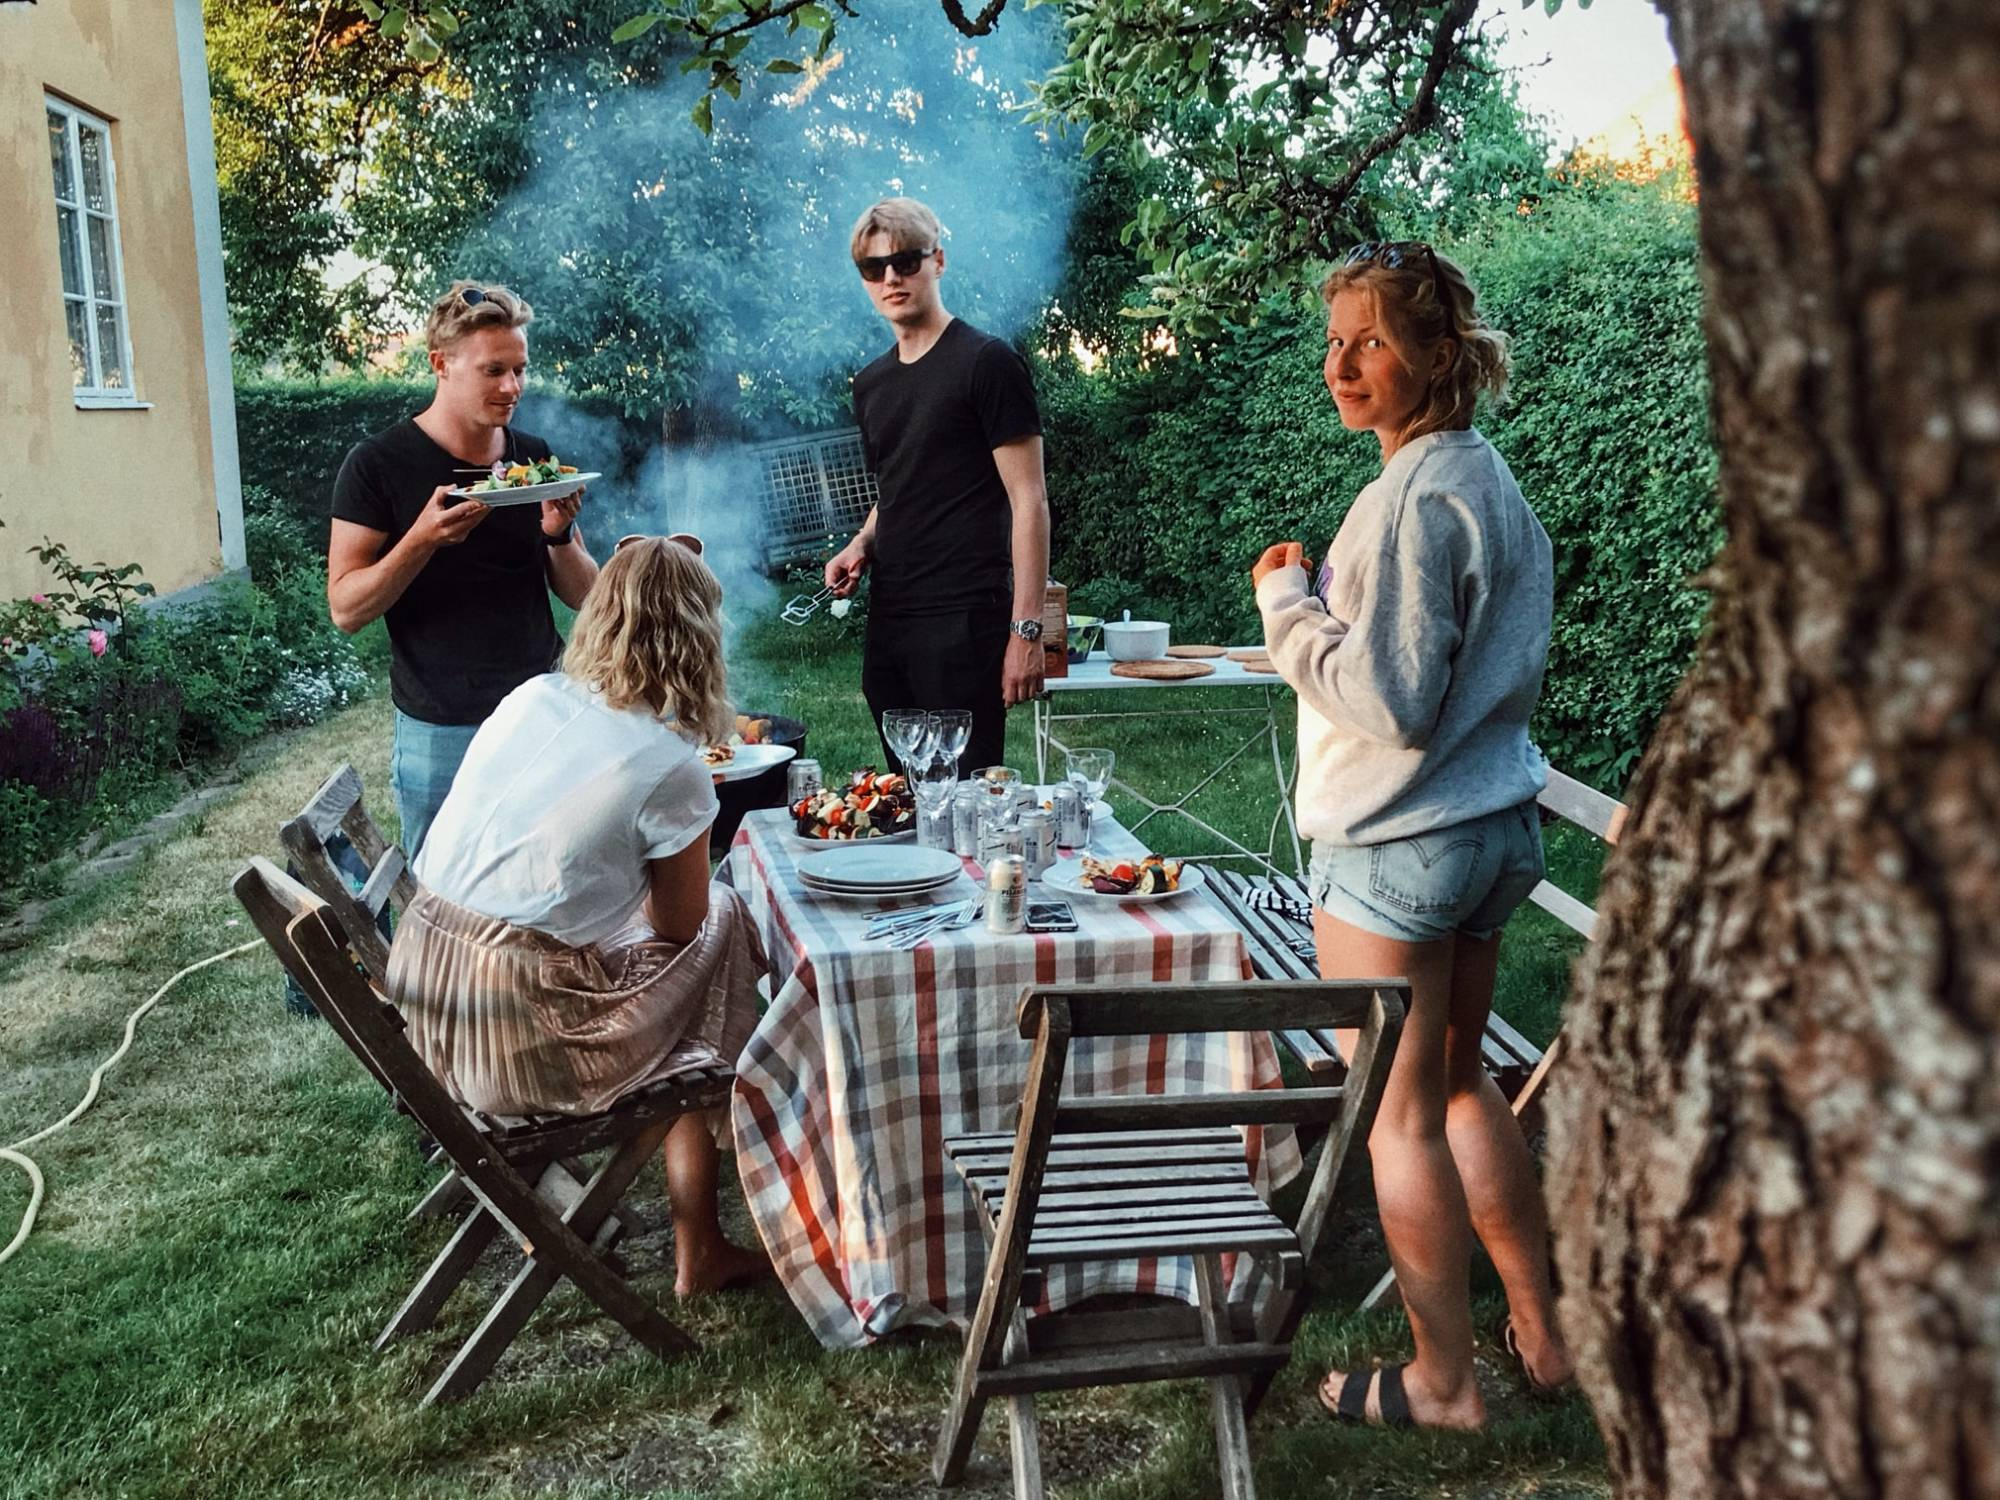 People having an outdoor barbecue